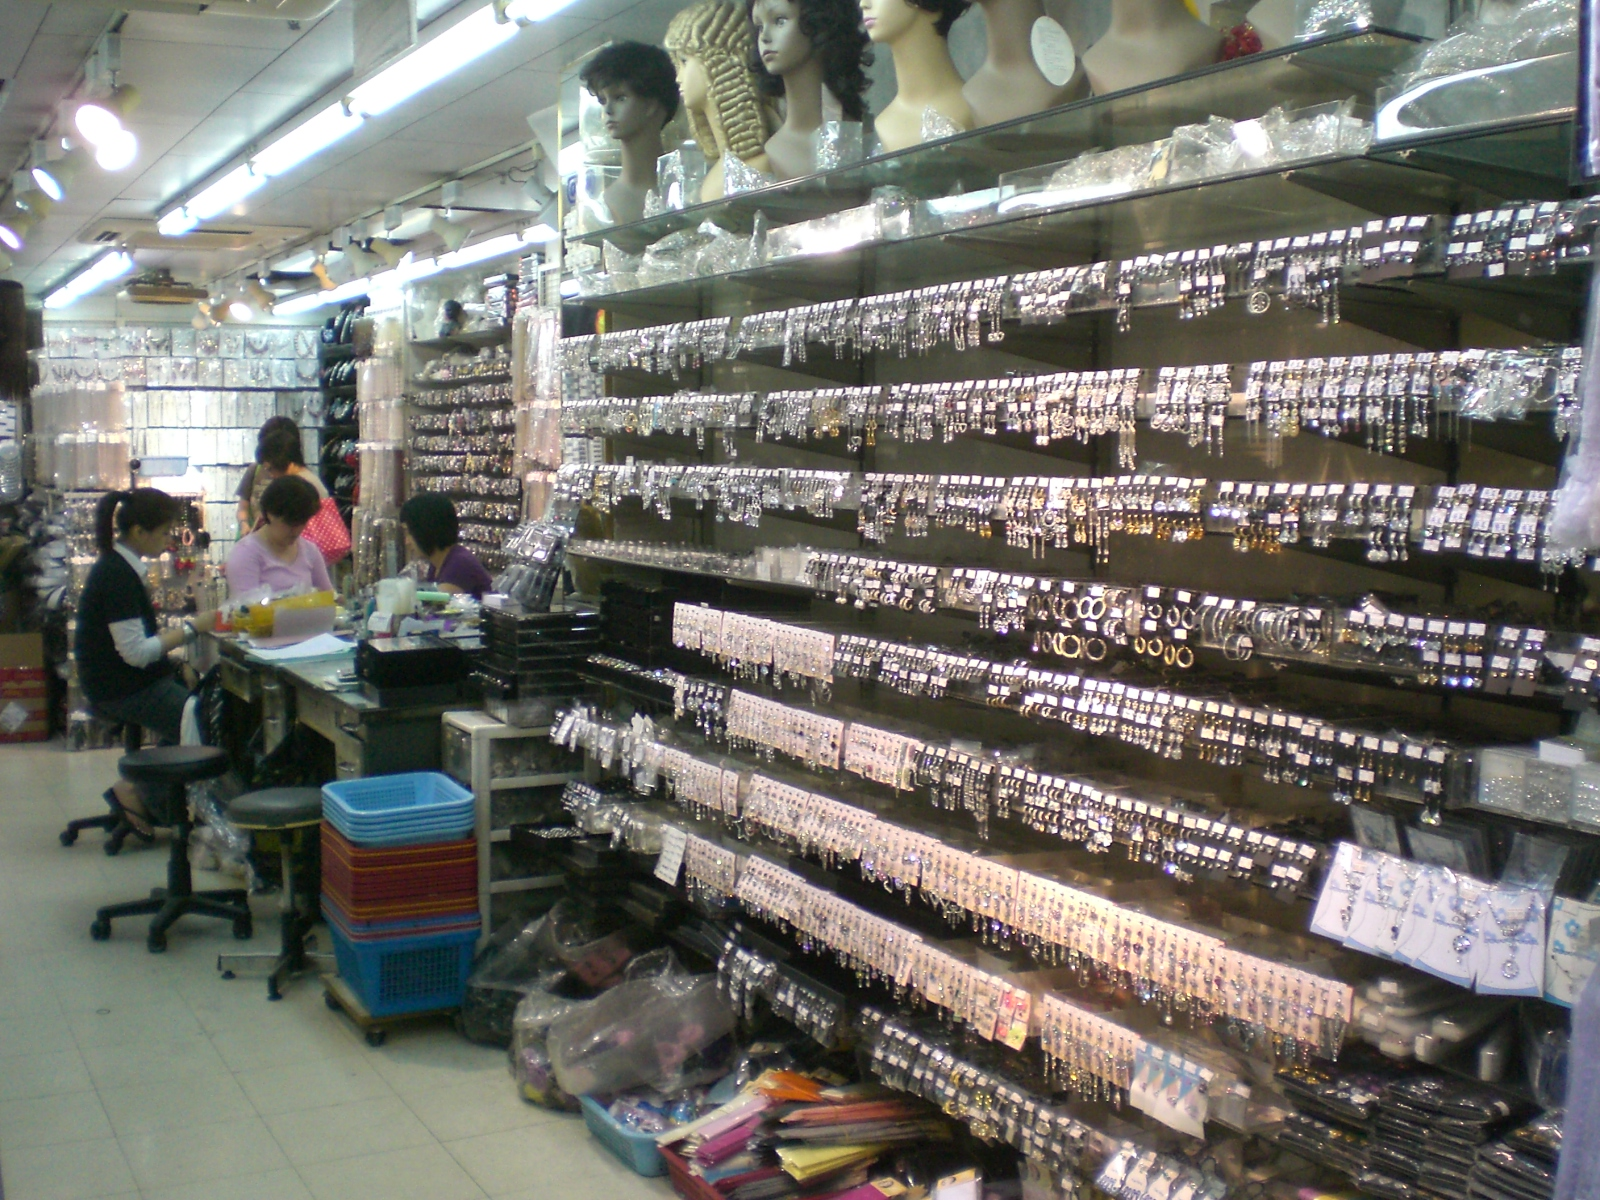 Costume Jewelry Manufacturers Mark Rk In Block Capital Letters